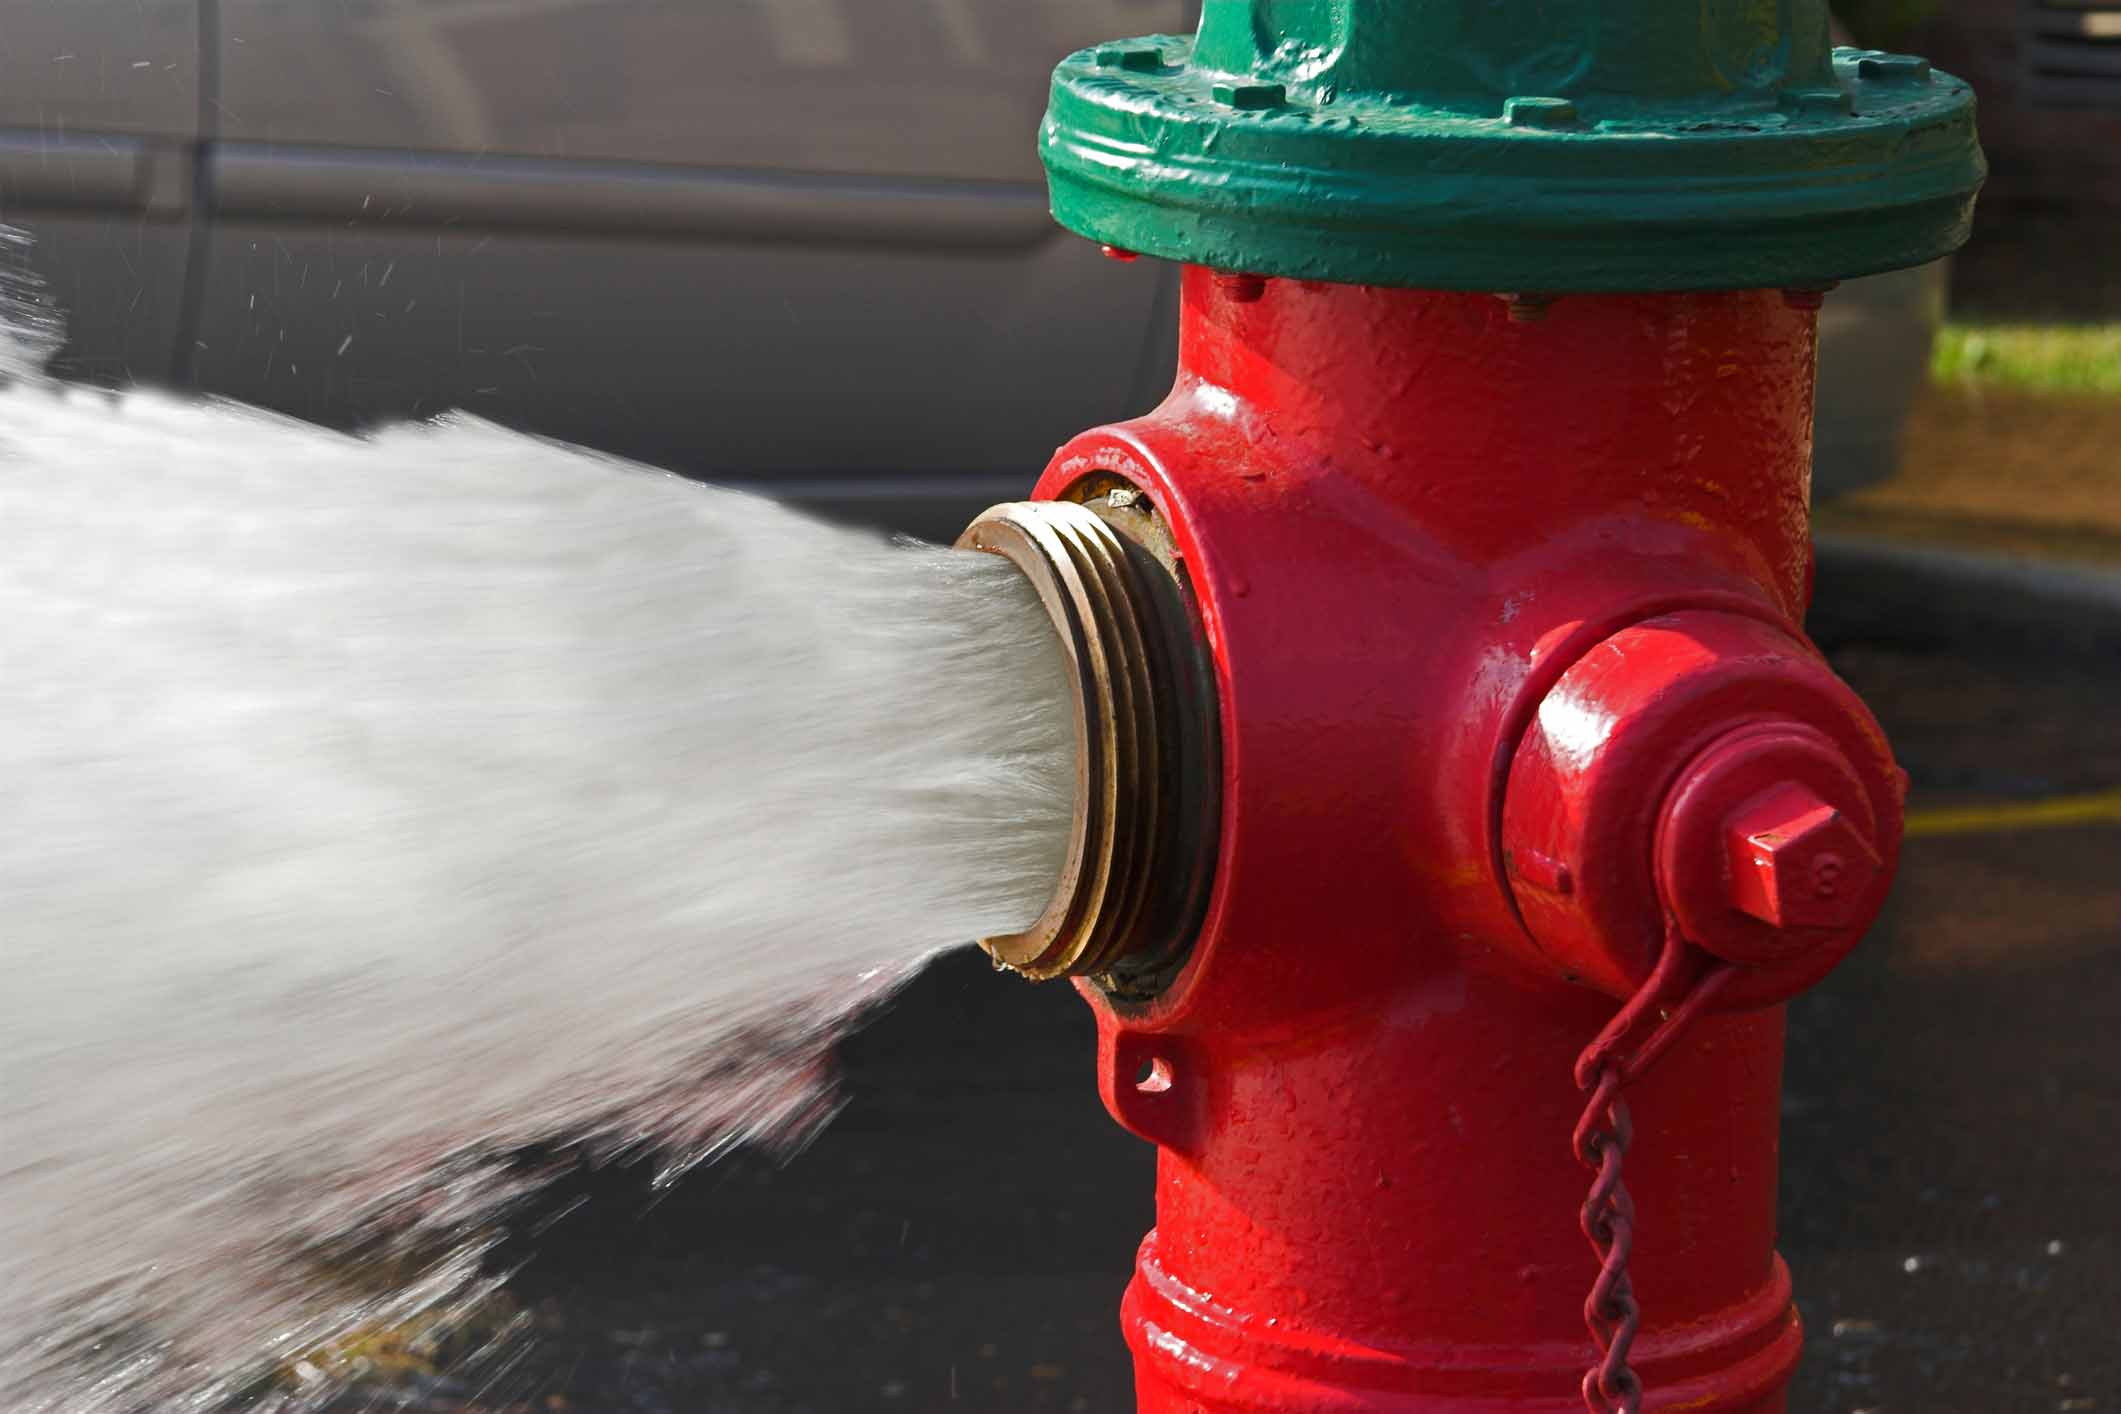 City of Braymer flushing water hydrants Tuesday, March 15th